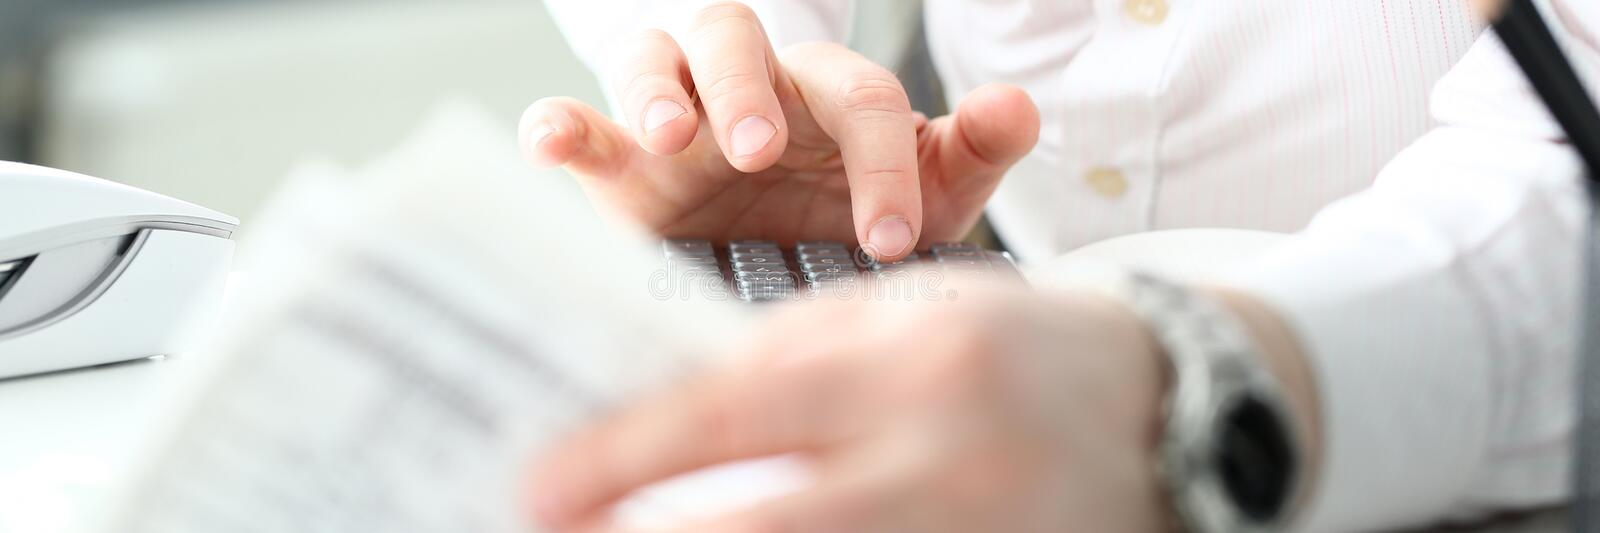 Male clerk finger pressing buttons on calculator devise evaluating expenses. Closeup royalty free stock photo